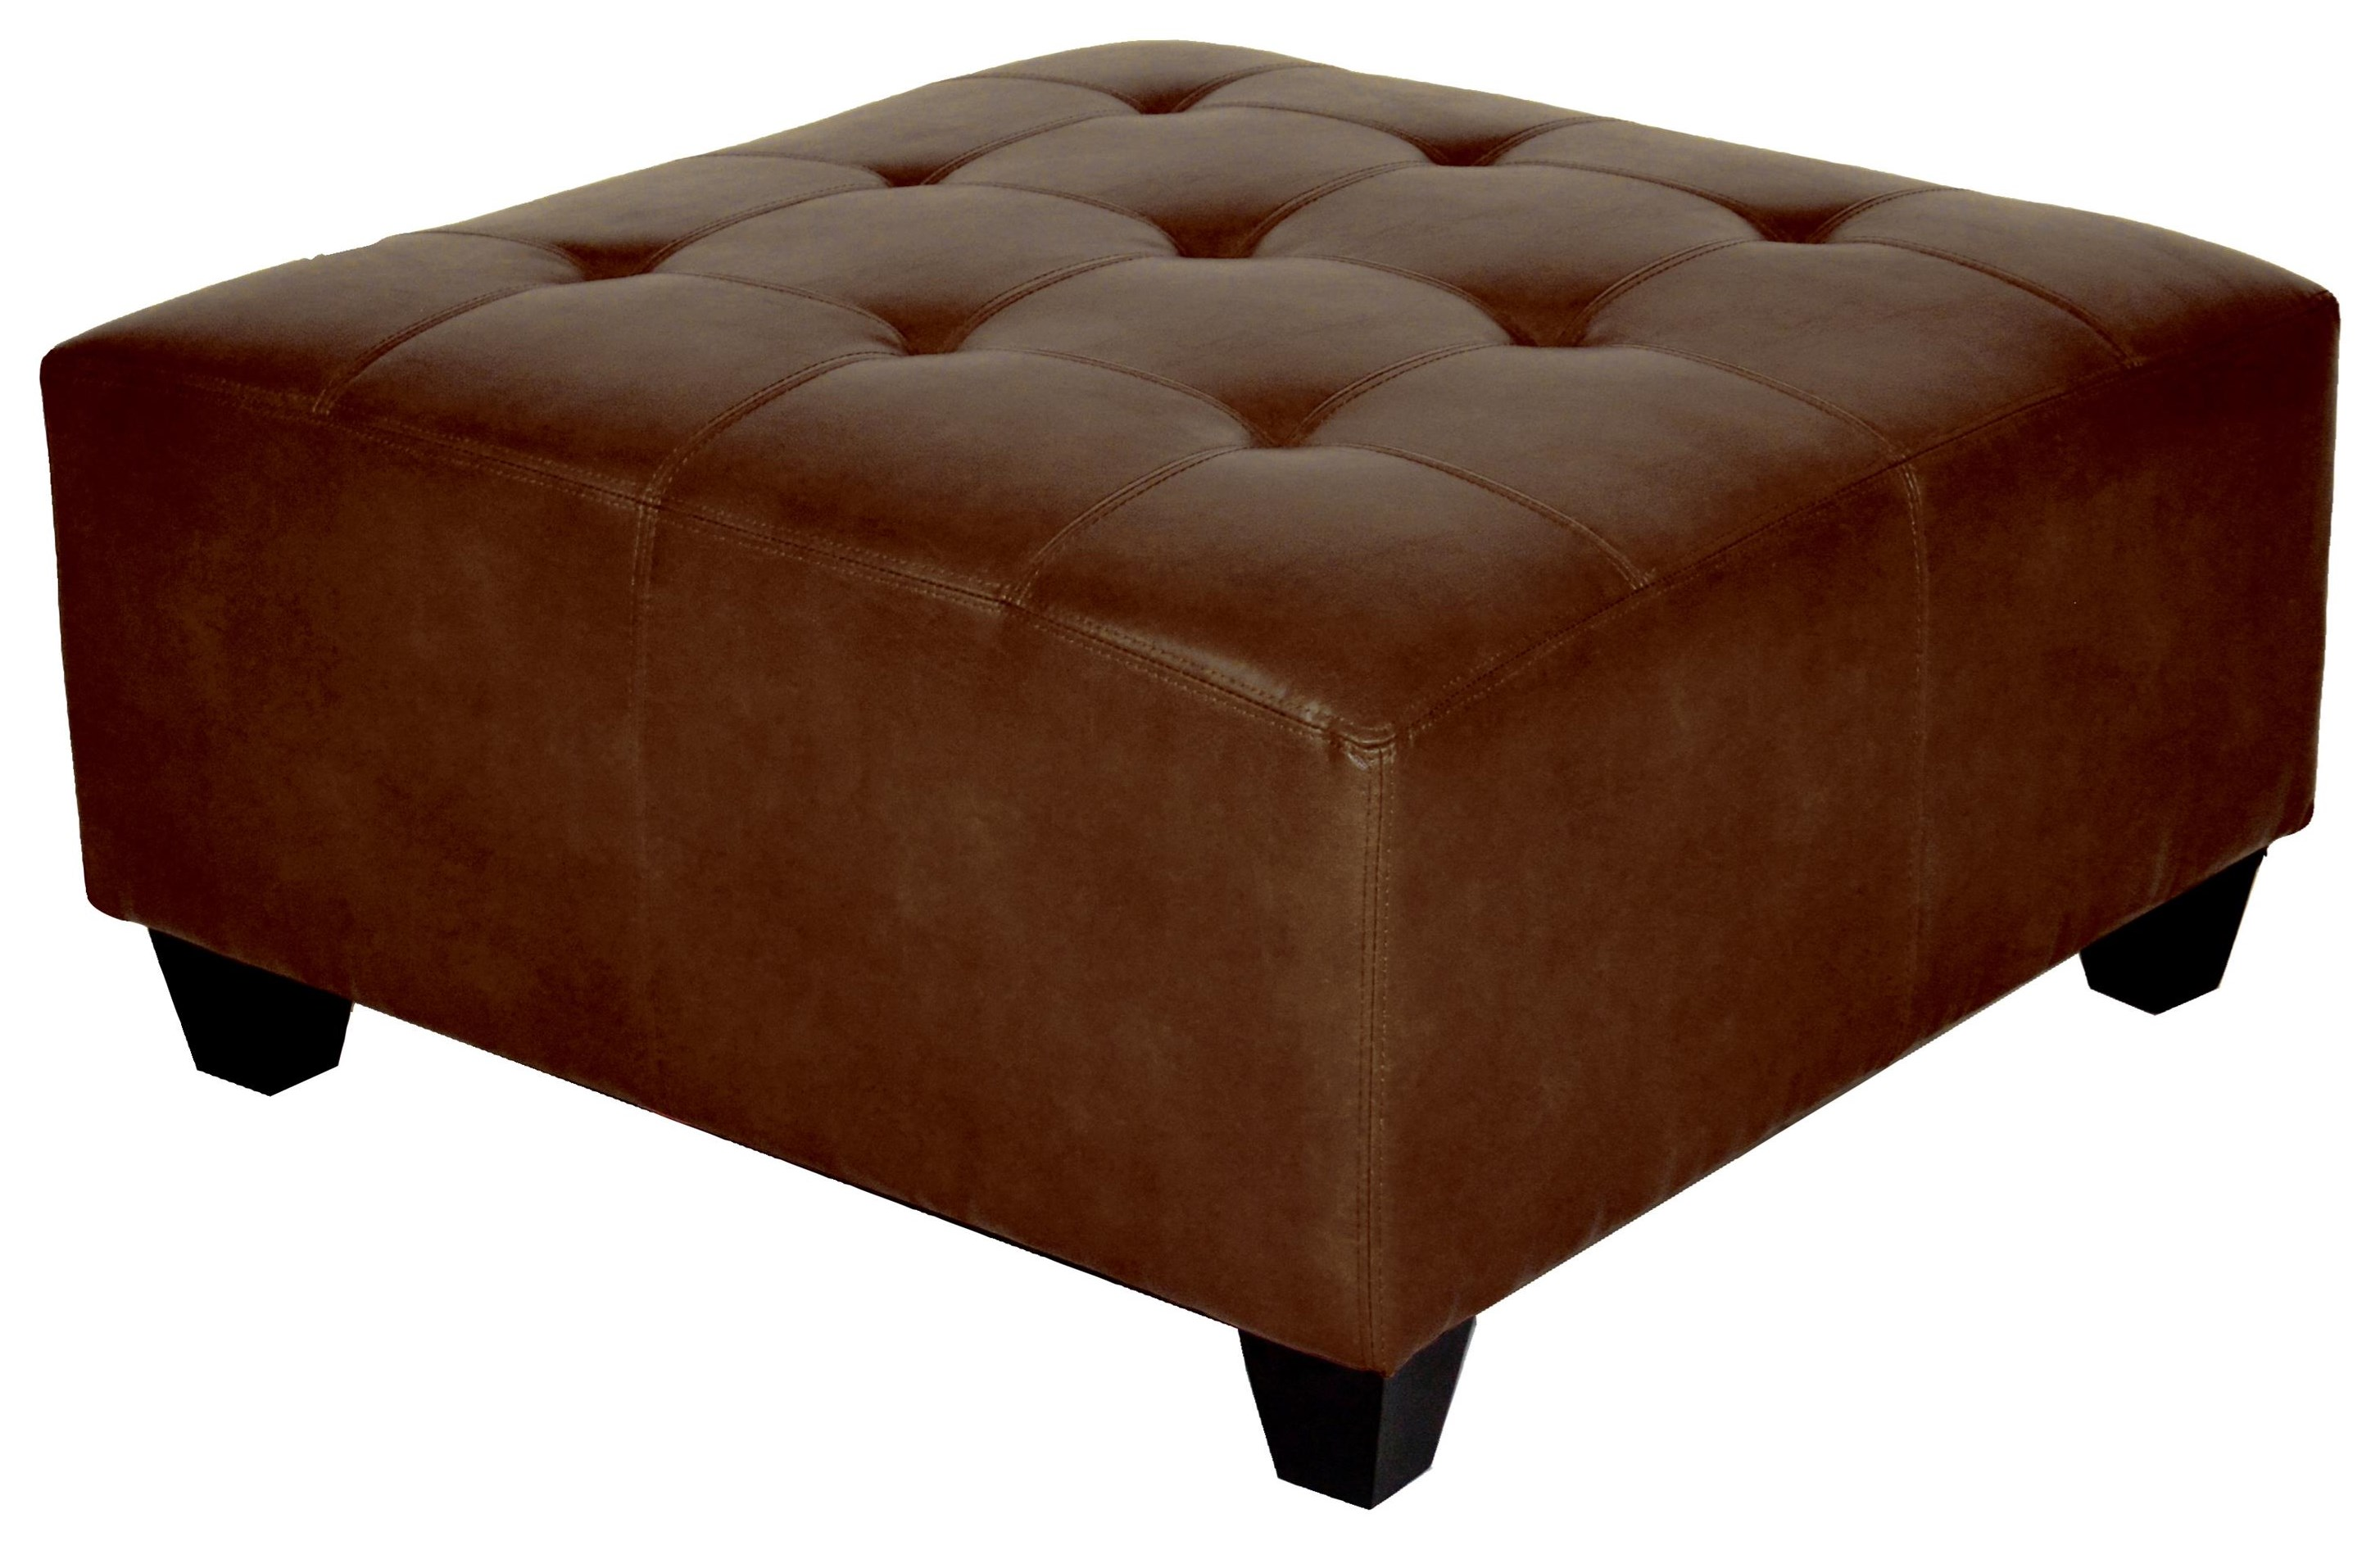 Chandler Ottomans Cocktail Ottoman in Brown by Offshore Furniture Source at Sam Levitz Furniture